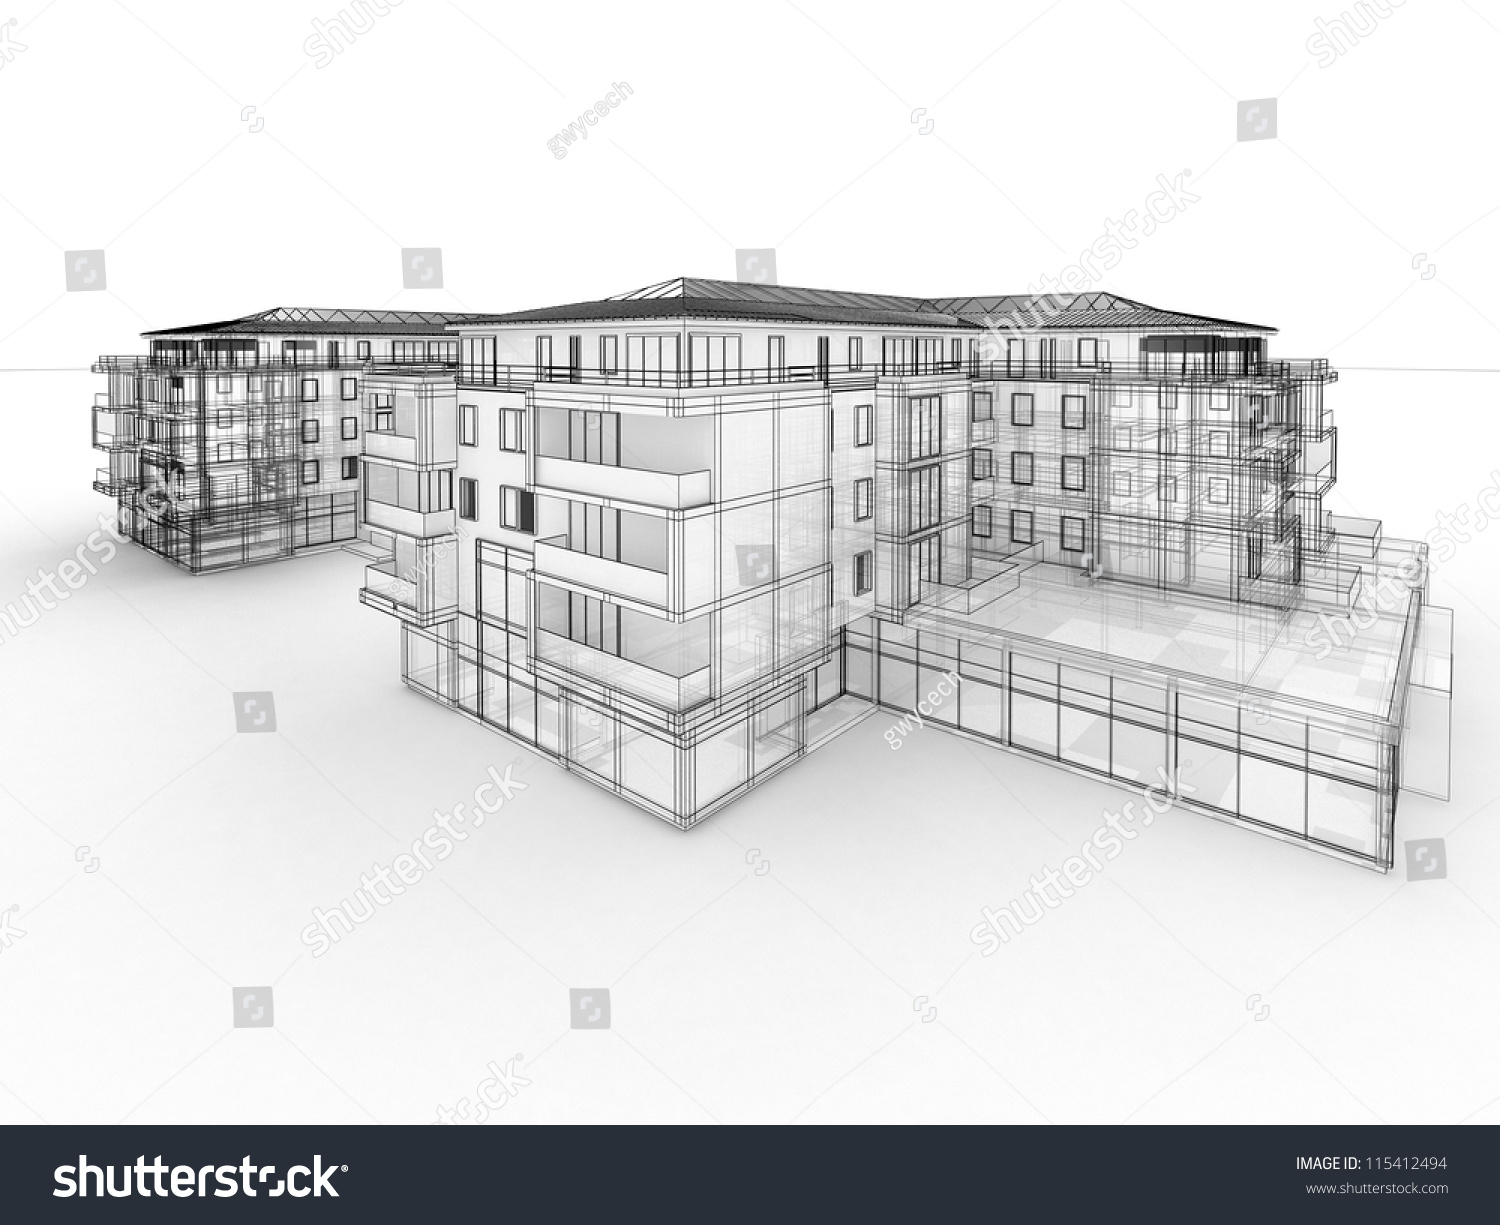 Apartment Building Design Concept Architects Computer Stock ...